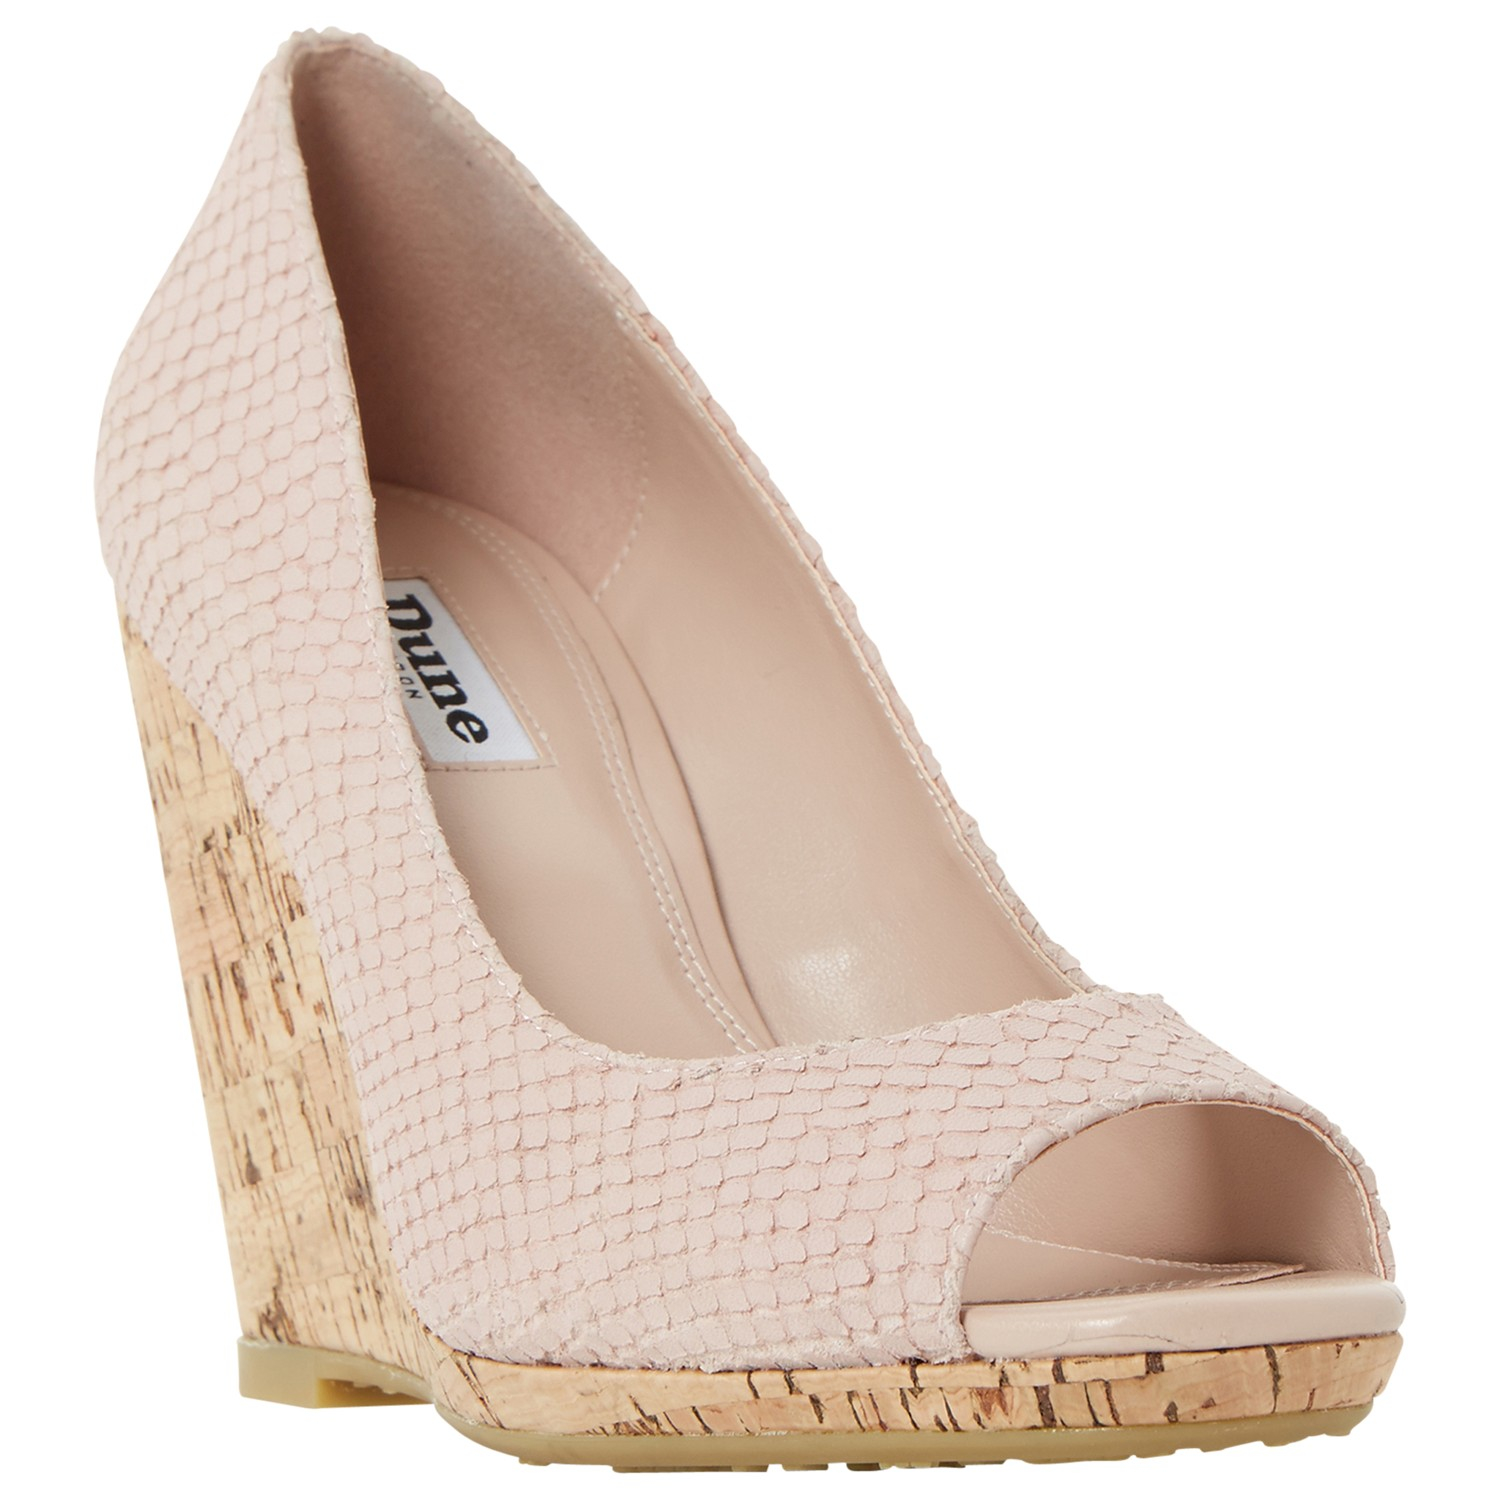 99159d99aa8d Dune Charlotte Cork Effect Wedge Sandals in Pink - Lyst